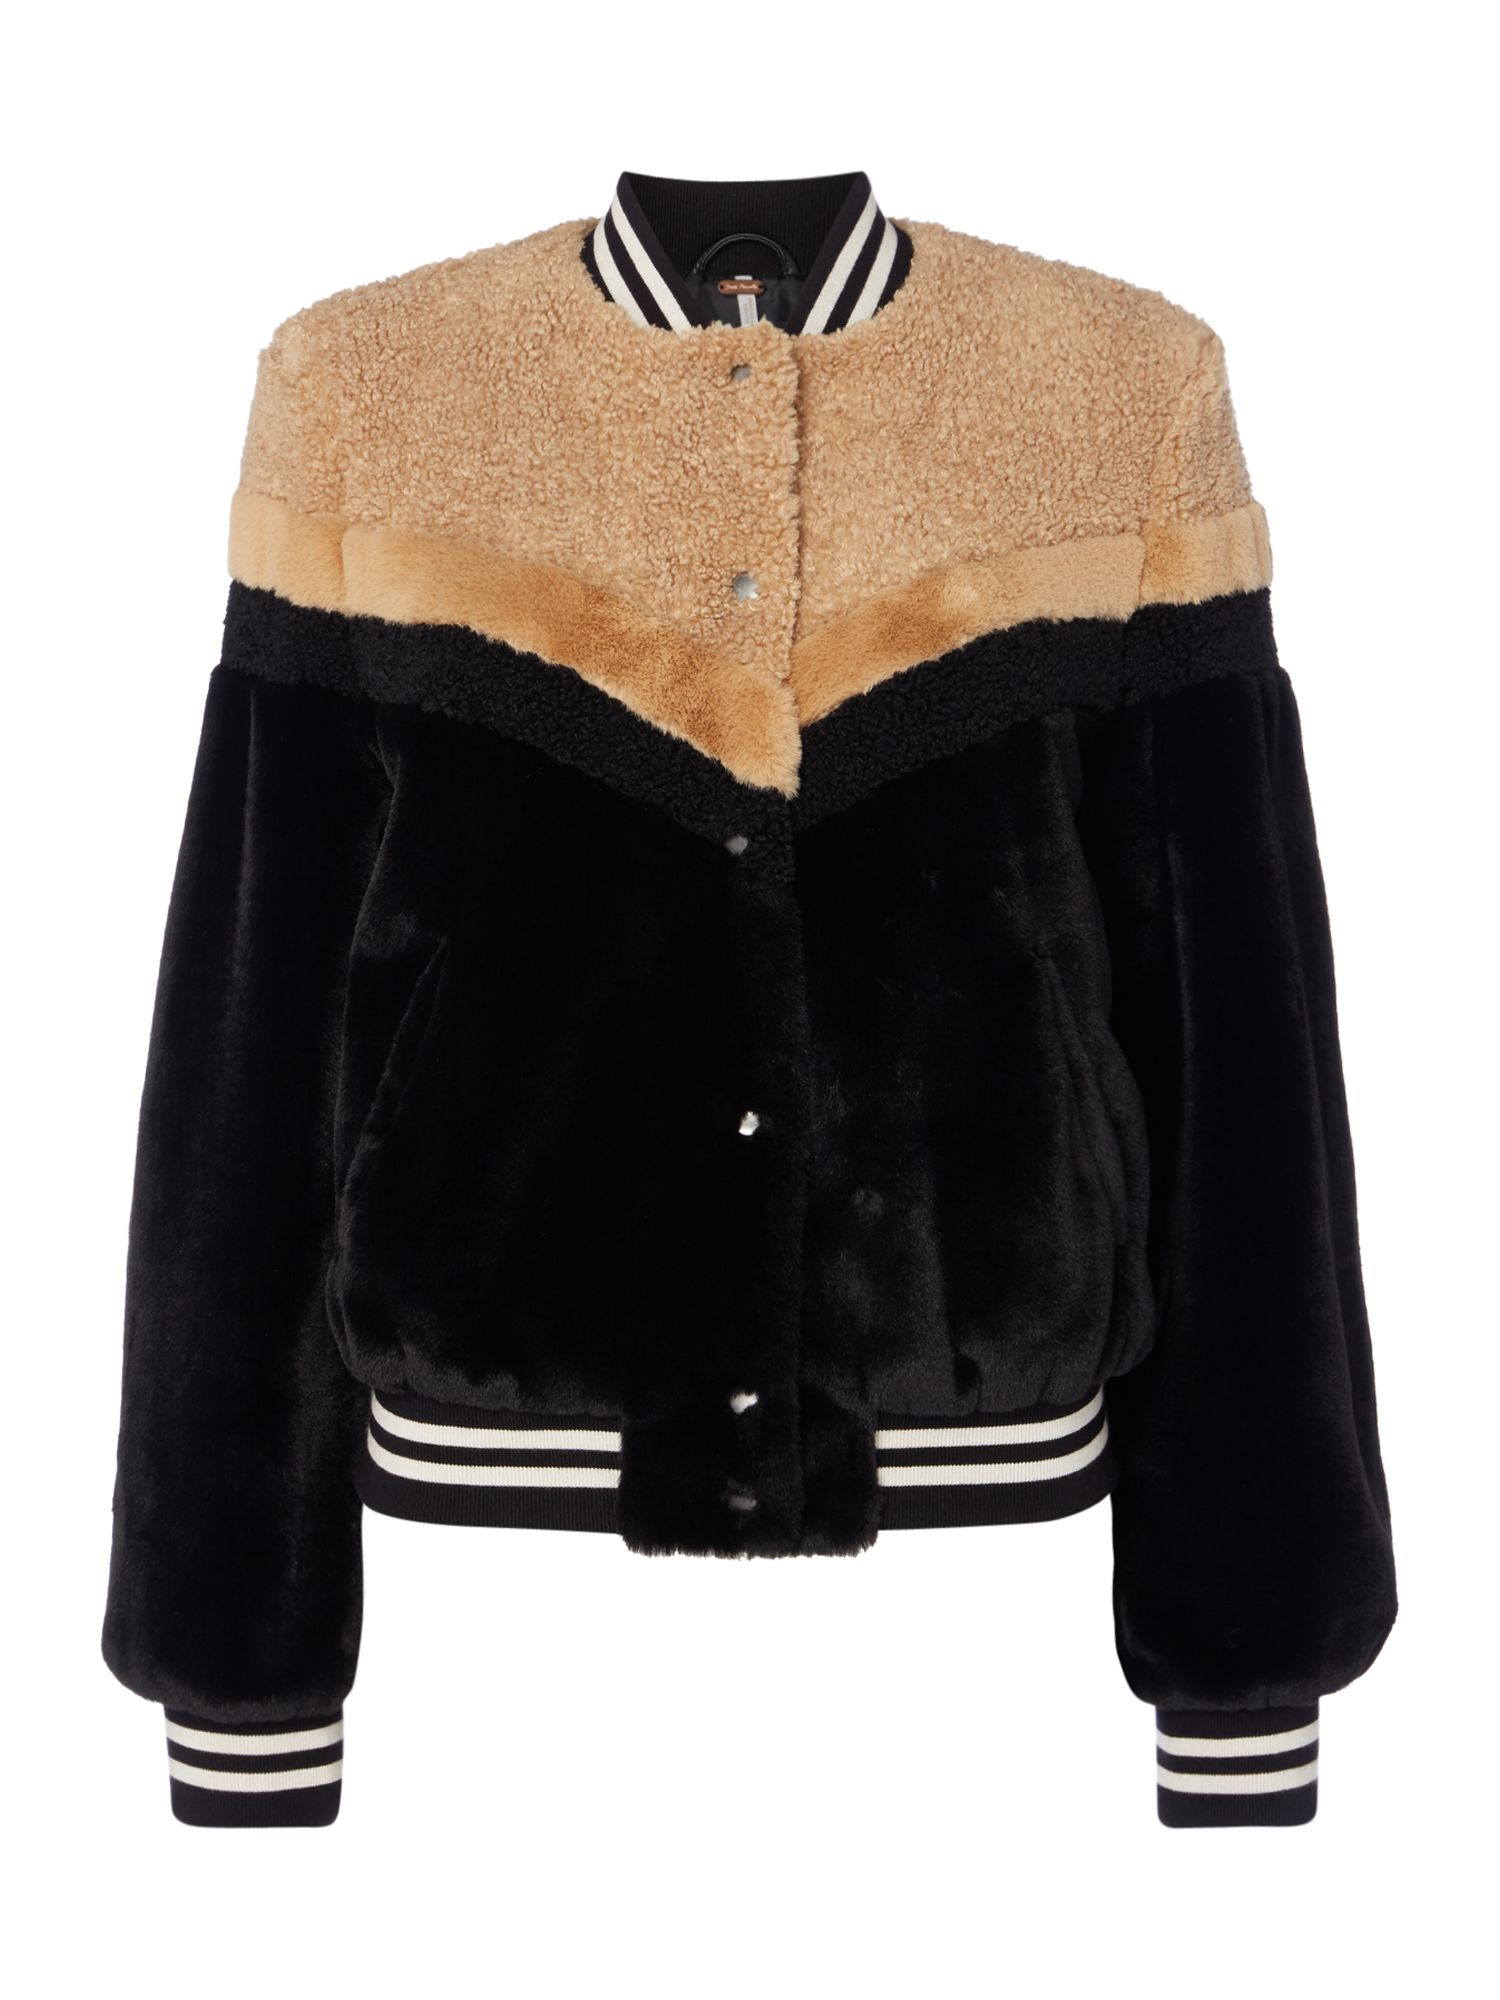 Free People Faux Fur Bomber Jacket With Mixed Fur Pannel, Black